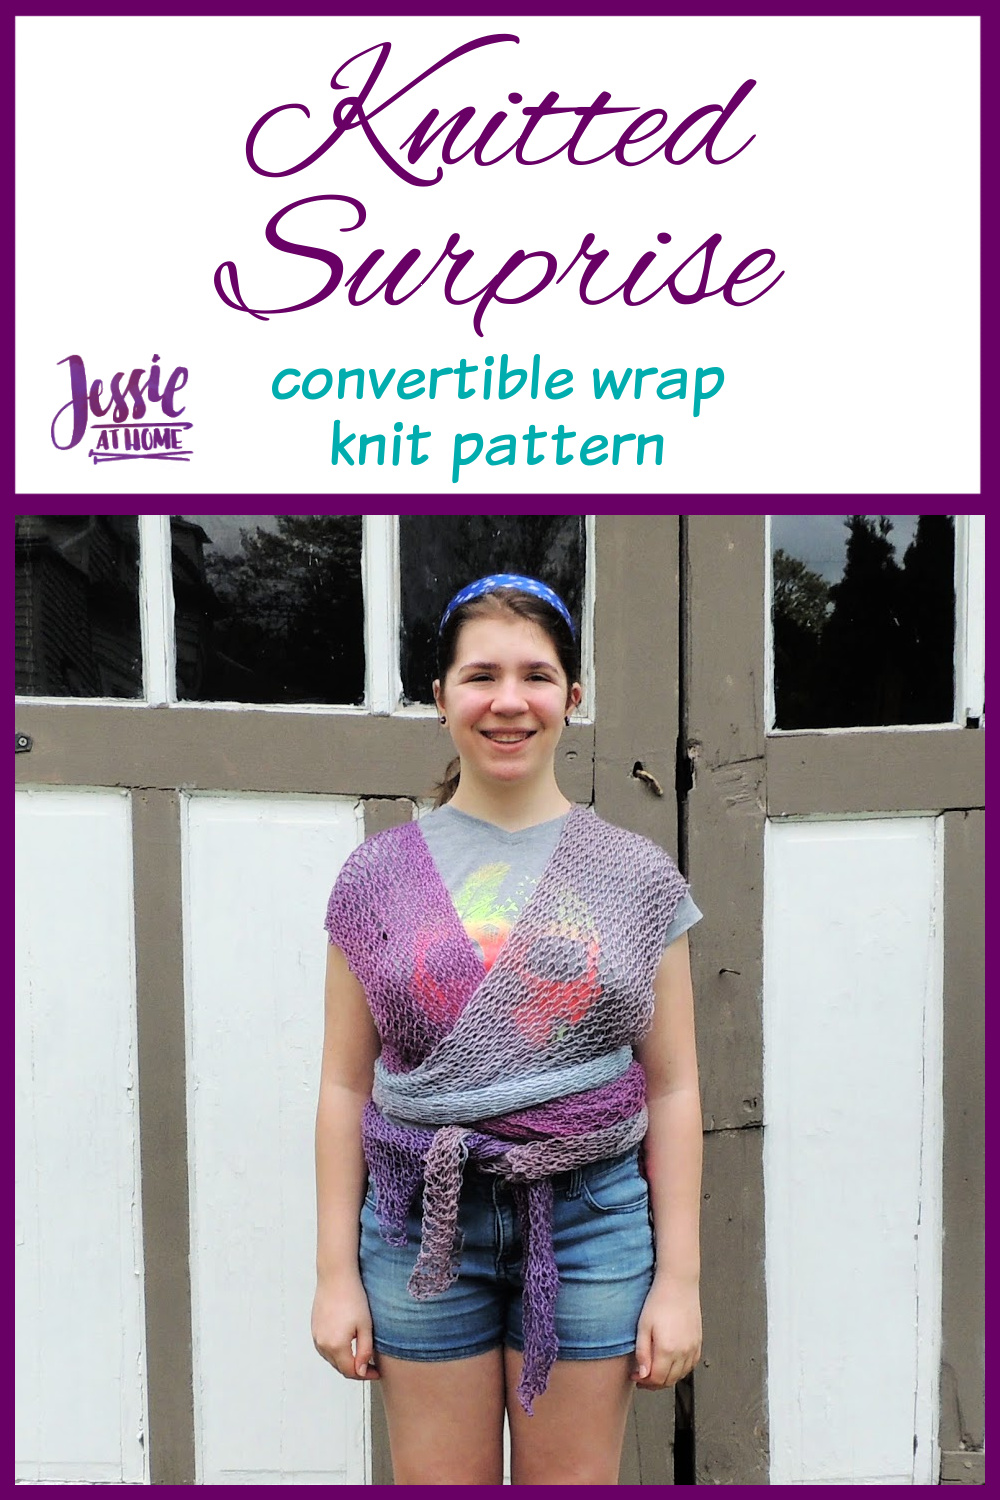 Knitted Surprise - convertible wrap knit pattern by Jessie At Home - Pin 1